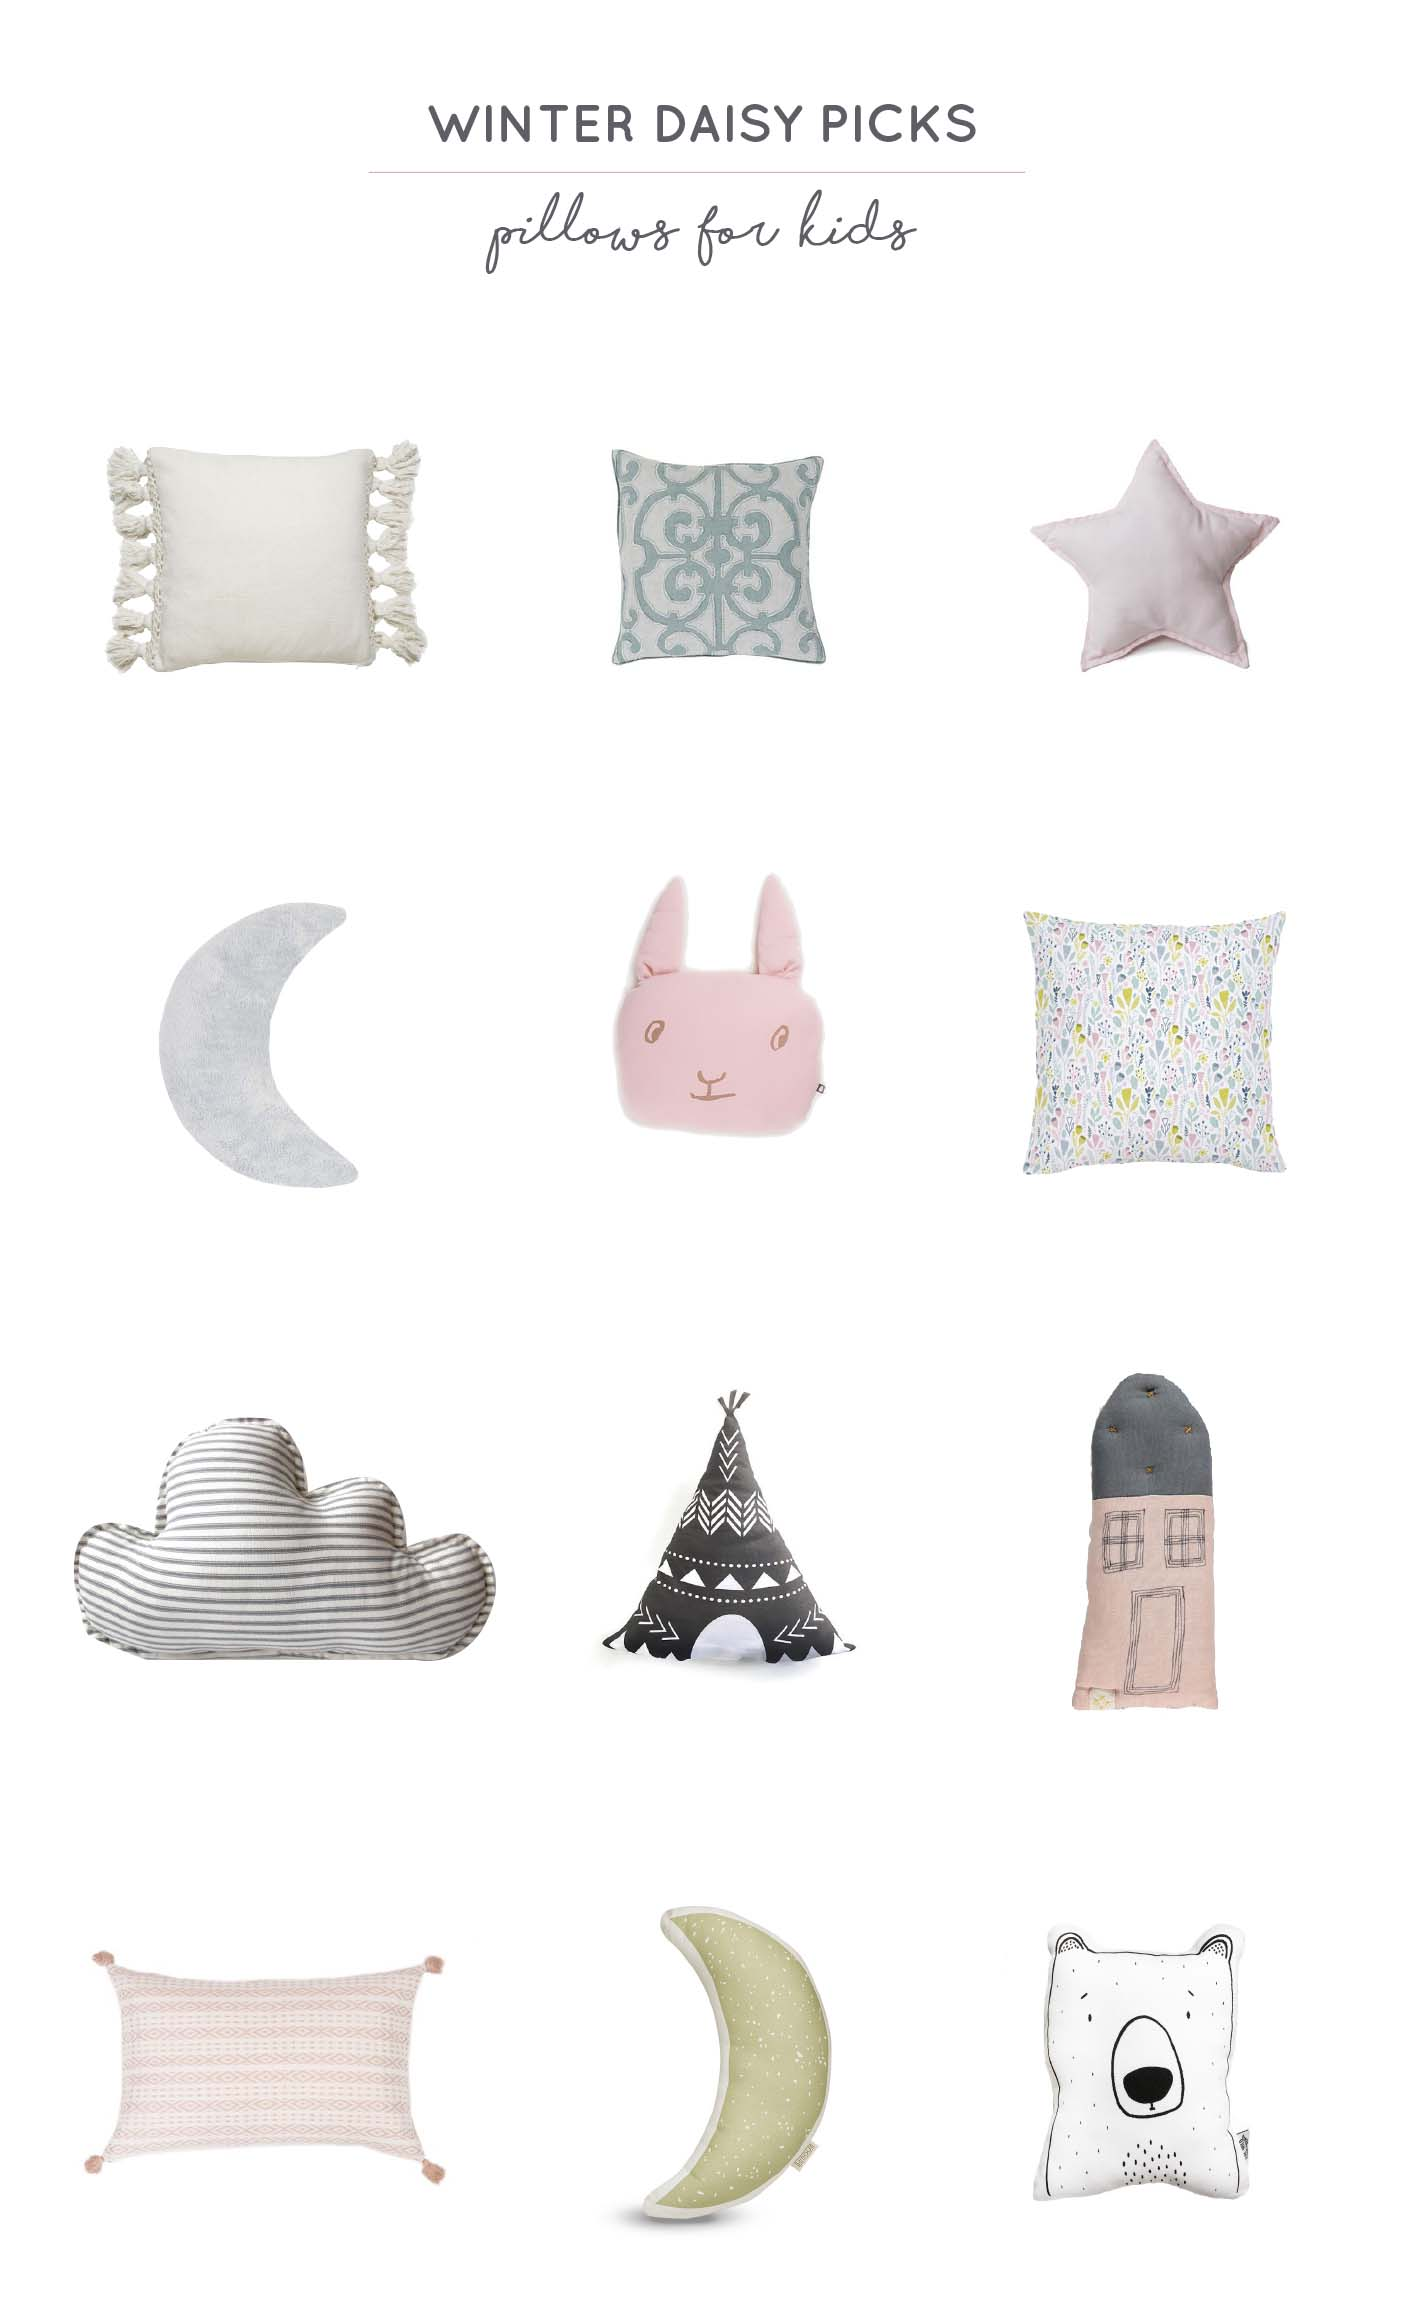 Winter Daisy picks pillows for kids rooms